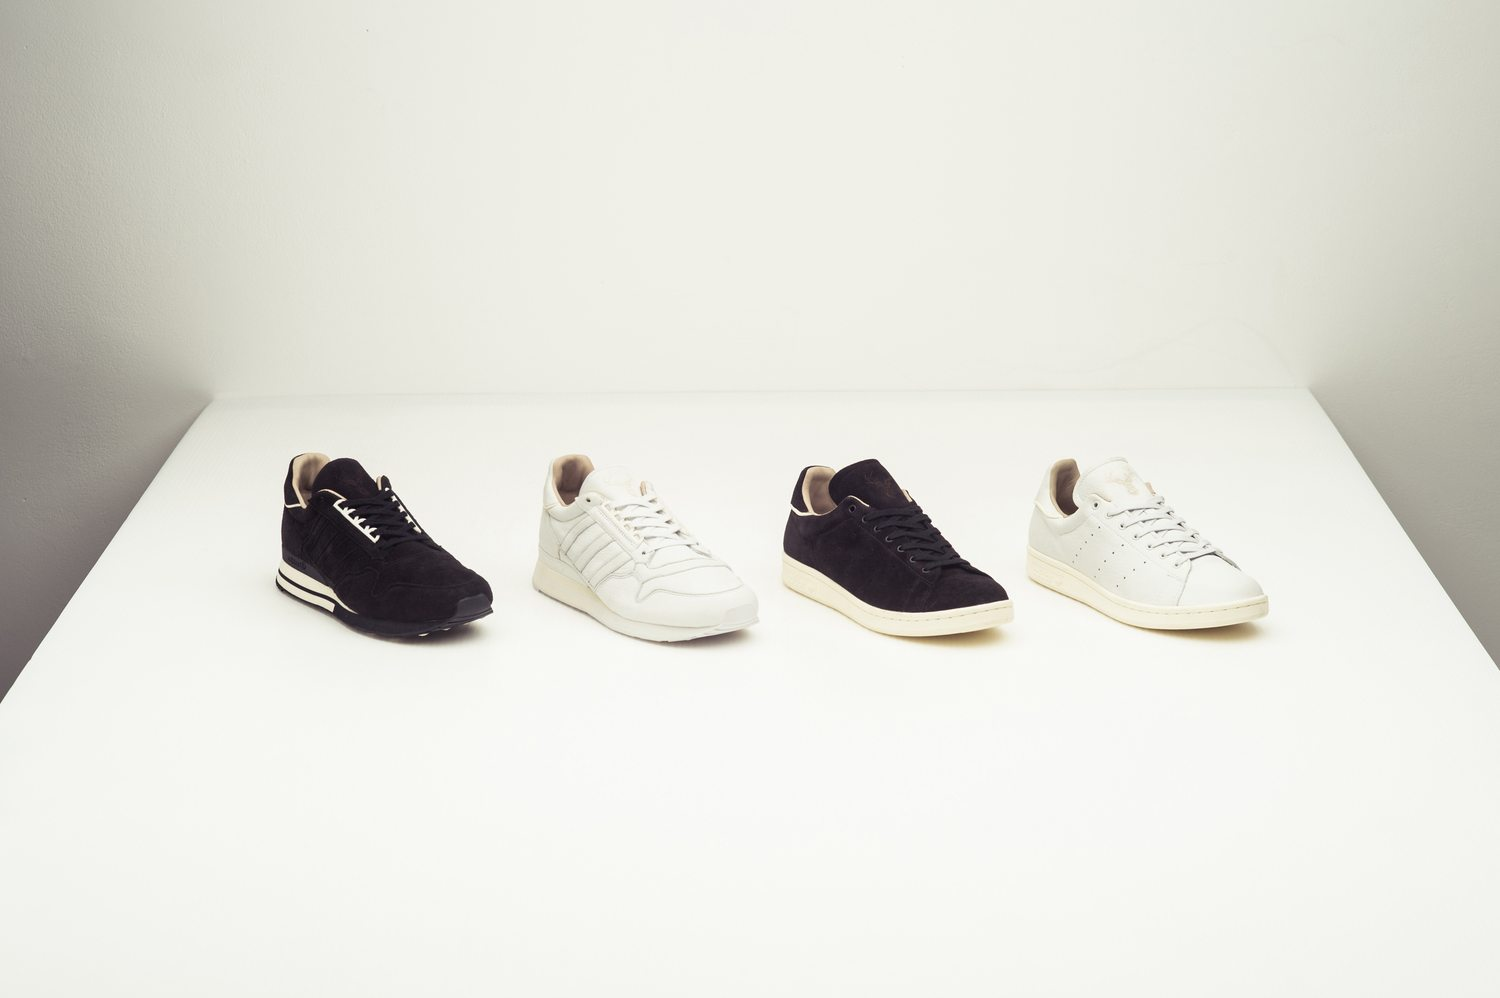 adidas originals made in germany pack 10